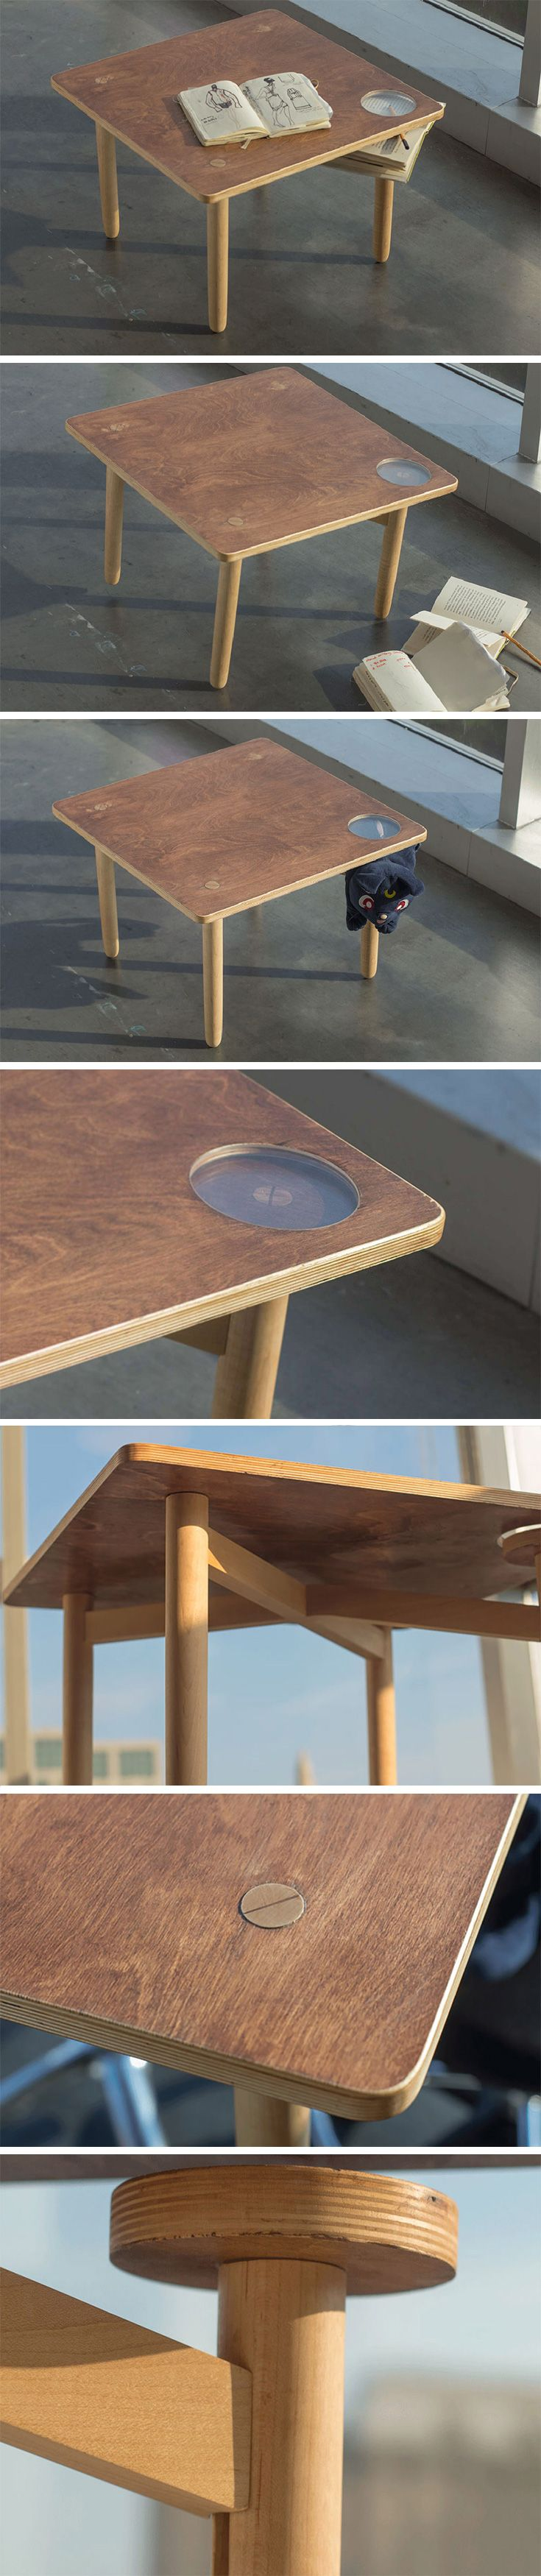 """The """"Table of Mindfulness"""" only works if YOU put the finishing touch on it! It's uneven 4th leg makes the design wobbly, that is, unless you wedge another object of your choosing to keep it supported. Whatever you choose, it will be visible through the round integrated window on the surface. Each table ends up being different than the next as well as a unique statement about the owner!"""